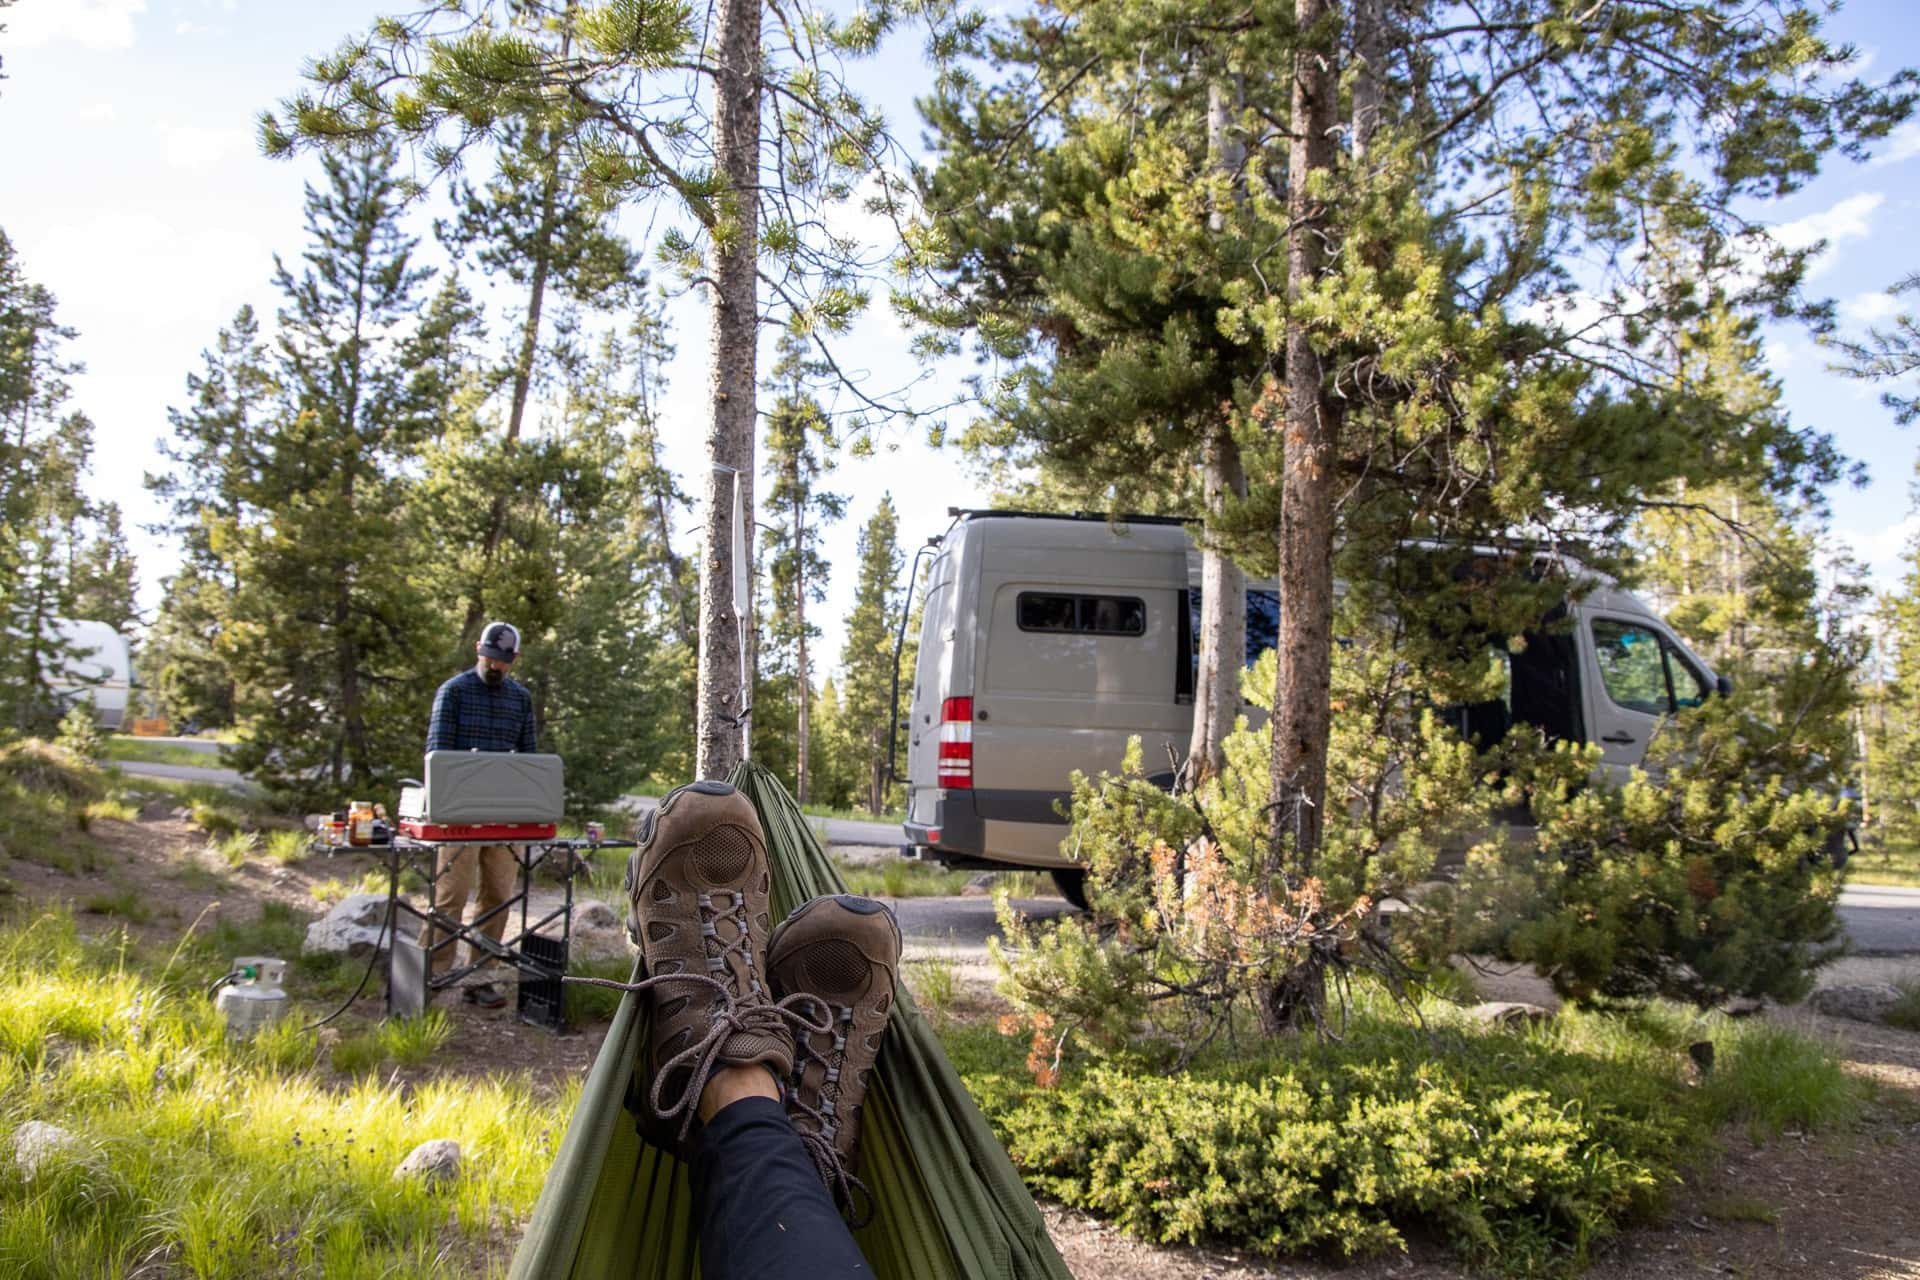 A guide on how to get health insurance when you live in a van that's still affordable and offers quality care nationwide.